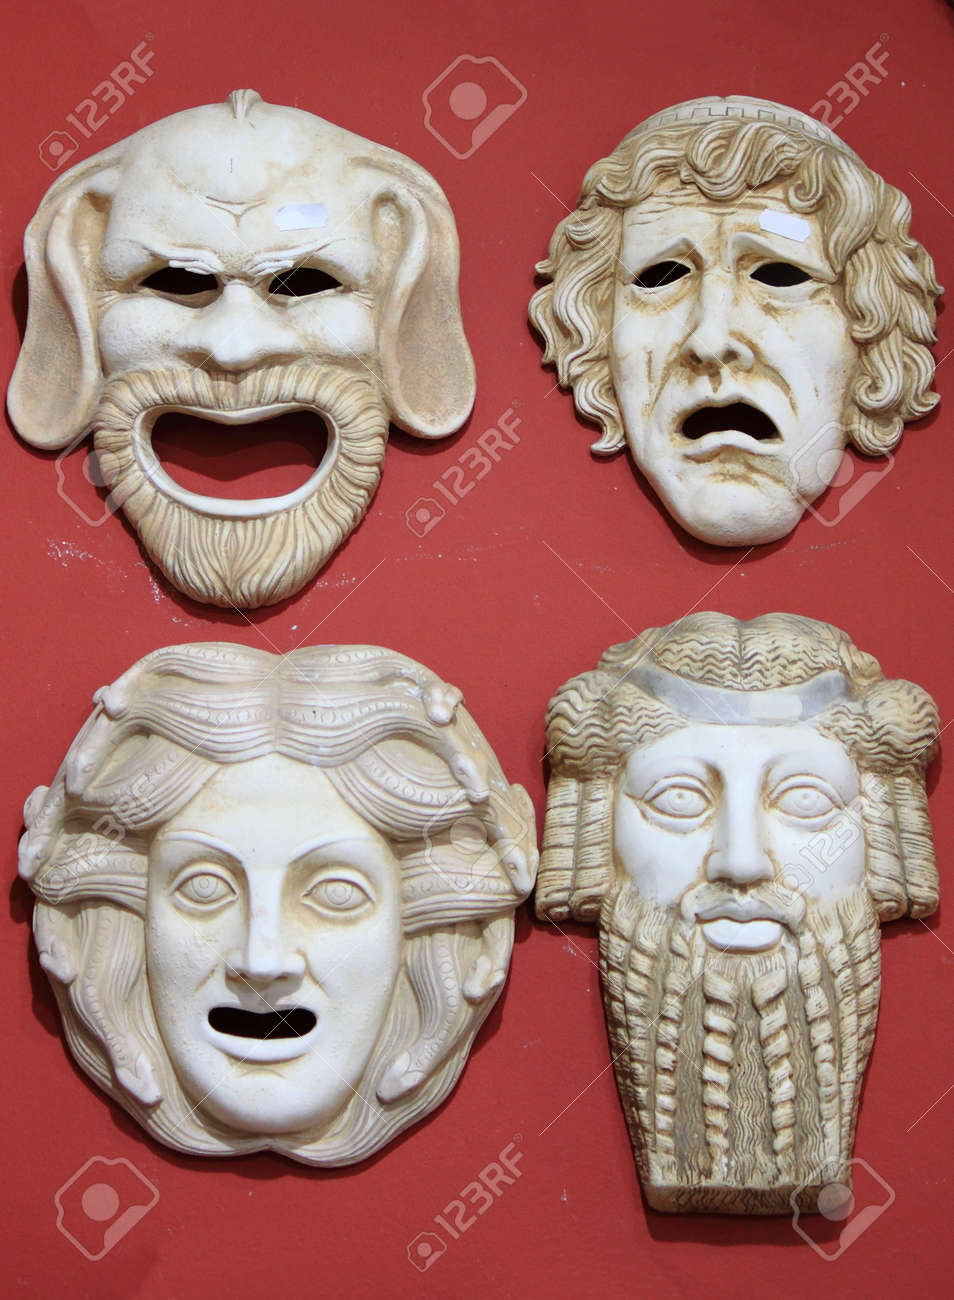 Ancient Greece theatre masks in marble stone - 14964017